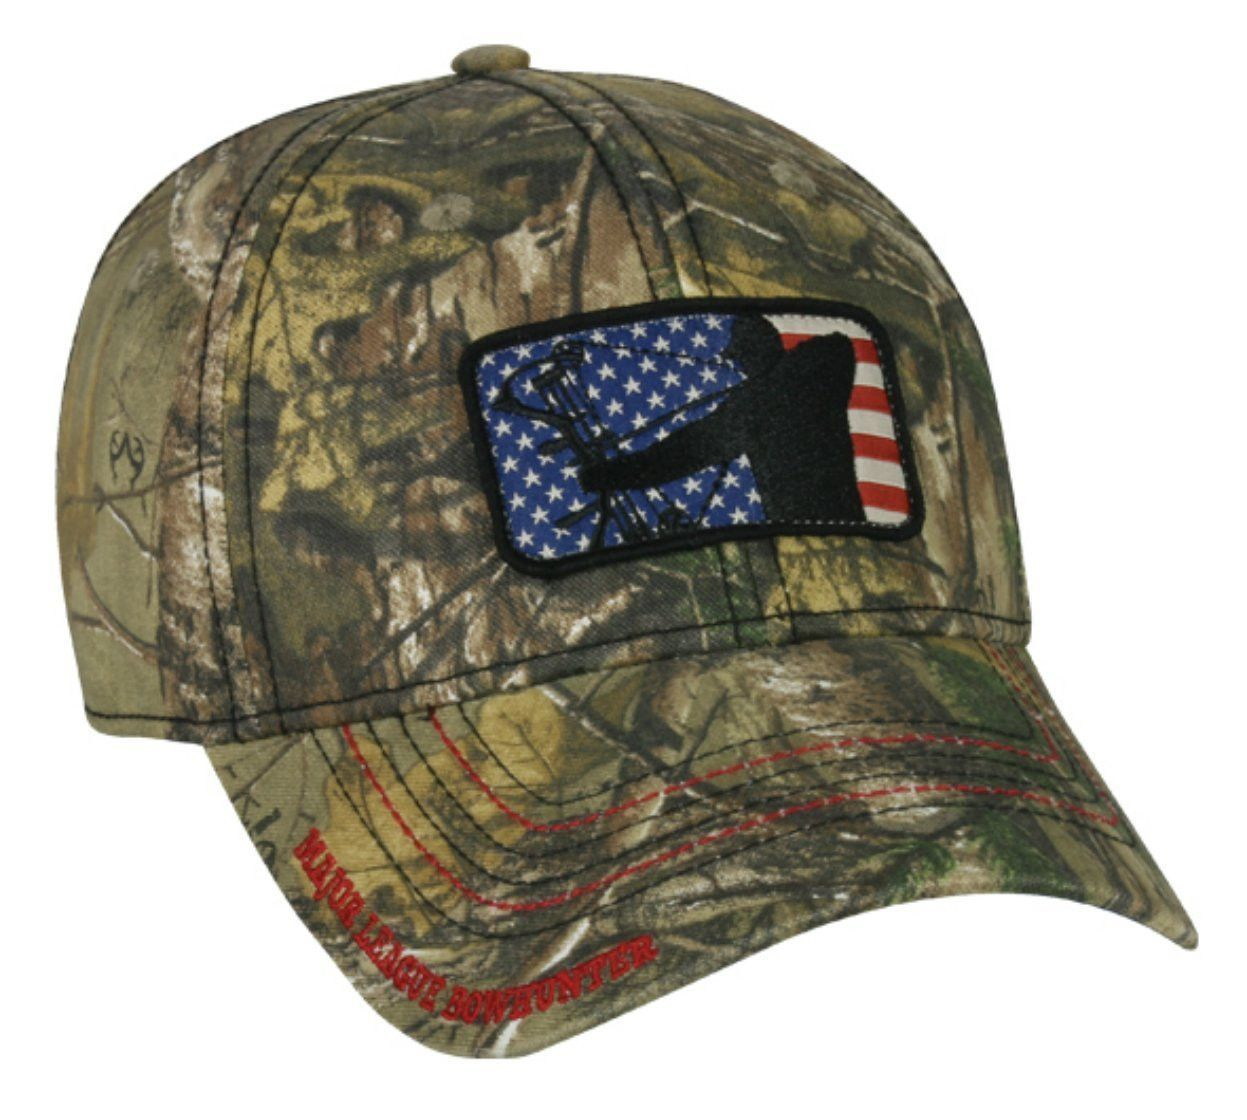 b9795d0389e9f Realtree Major League Bow Hunter Patriotic Flag patch Hunting Hat ...